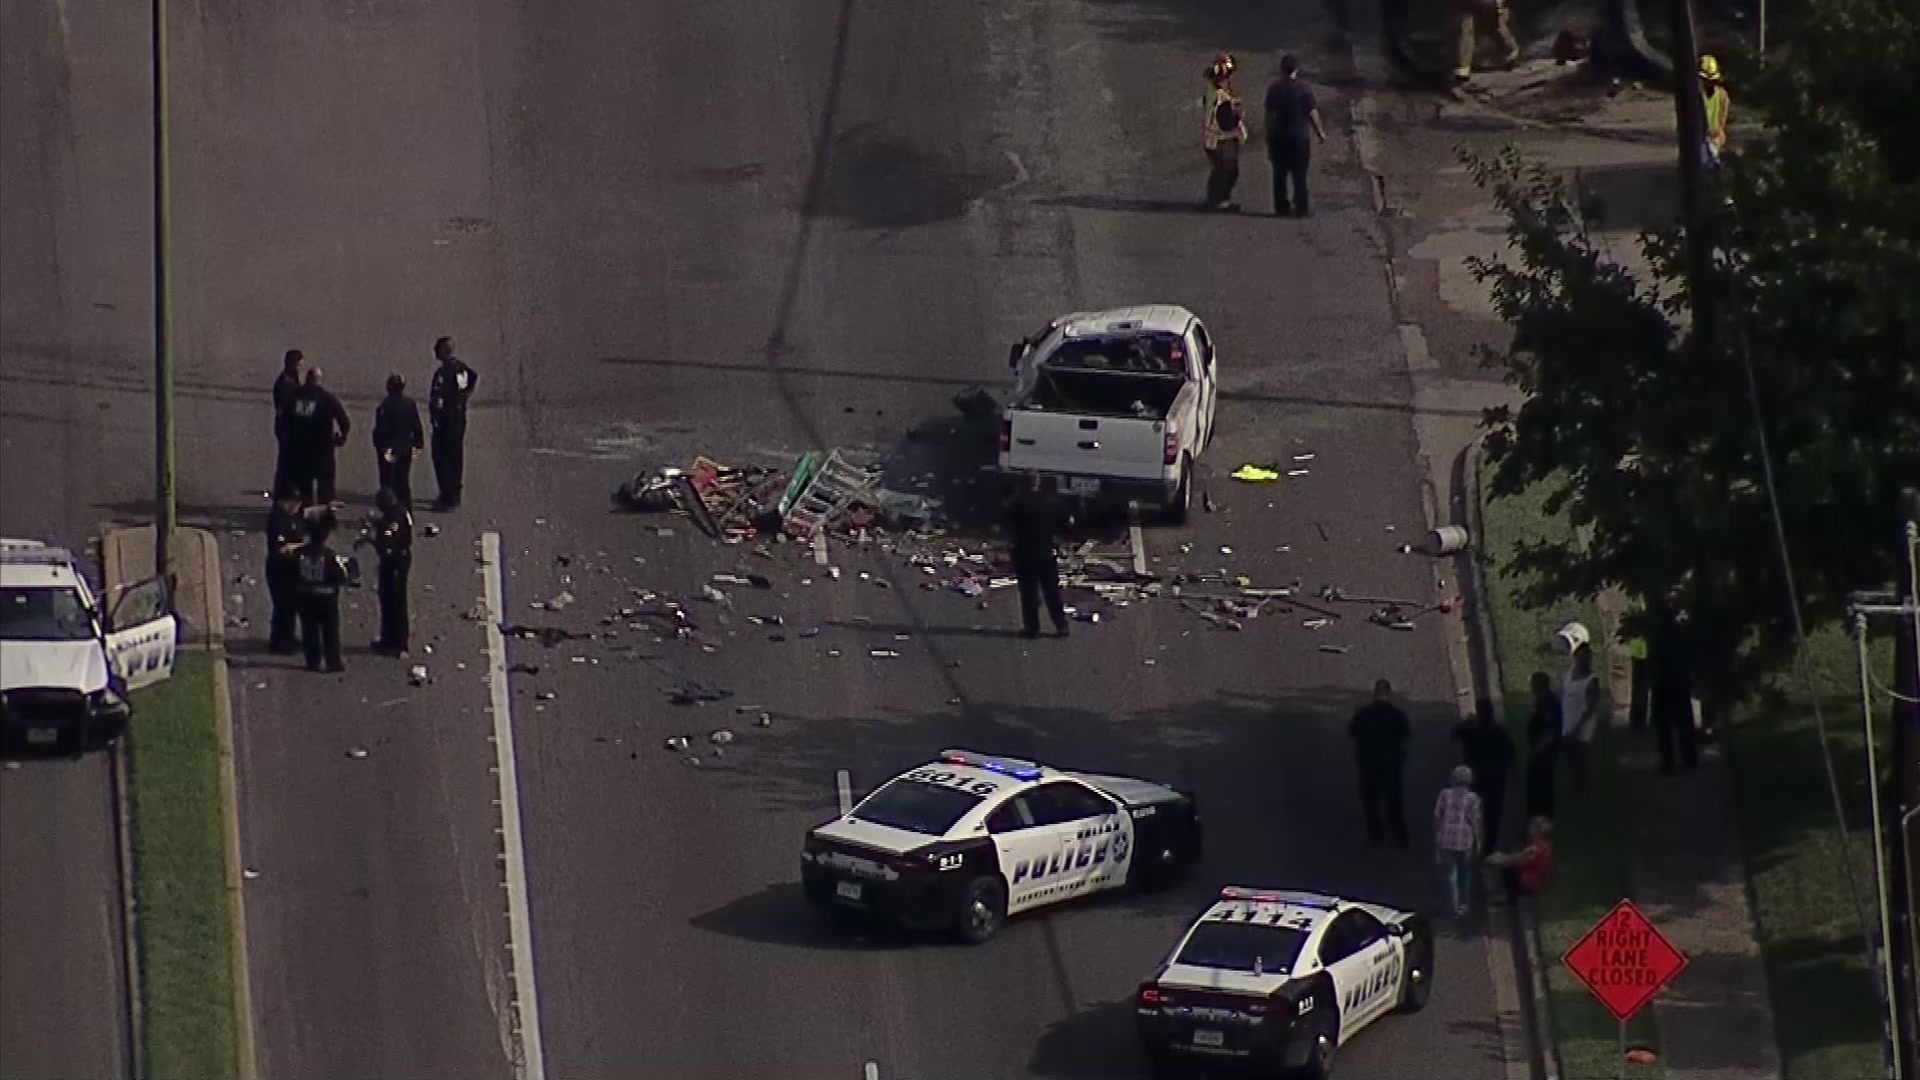 2 Officers Among 7 Hurt in Multi-Vehicle Crash in Dallas